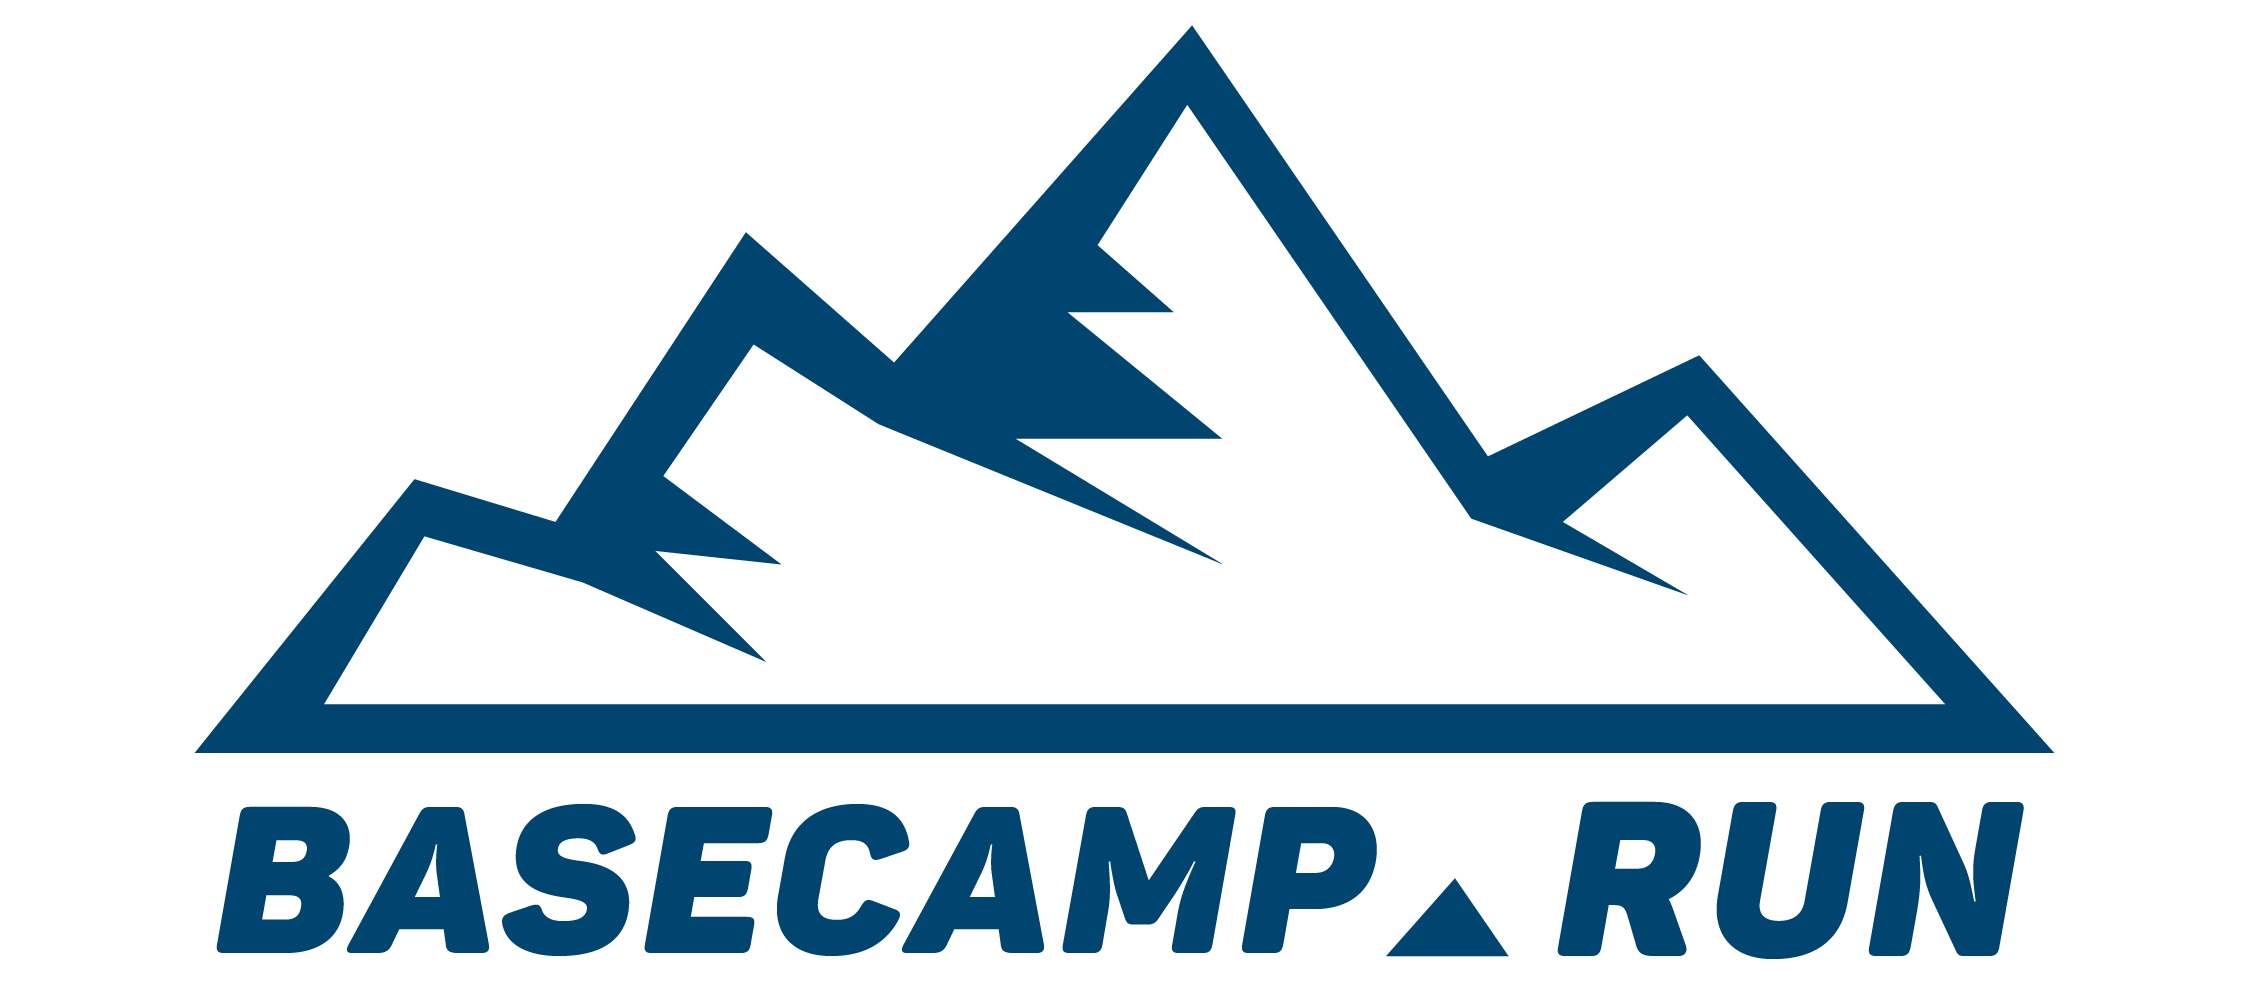 BasecampRun: Reach High